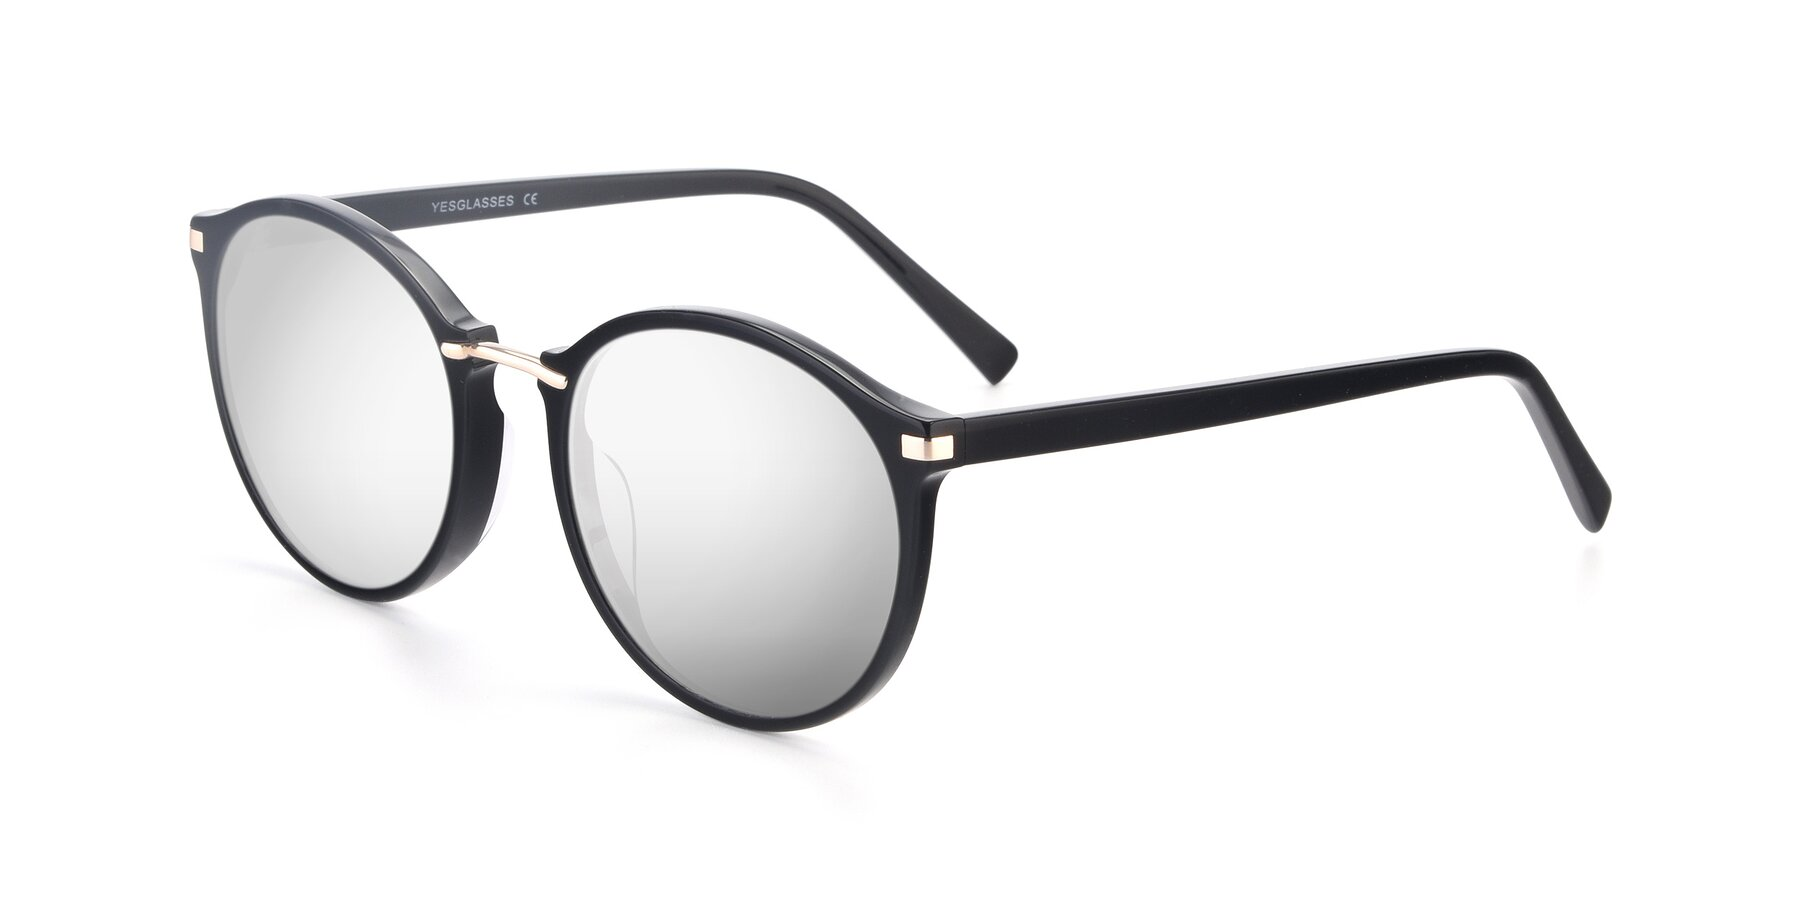 Angle of 17582 in Black with Silver Mirrored Lenses